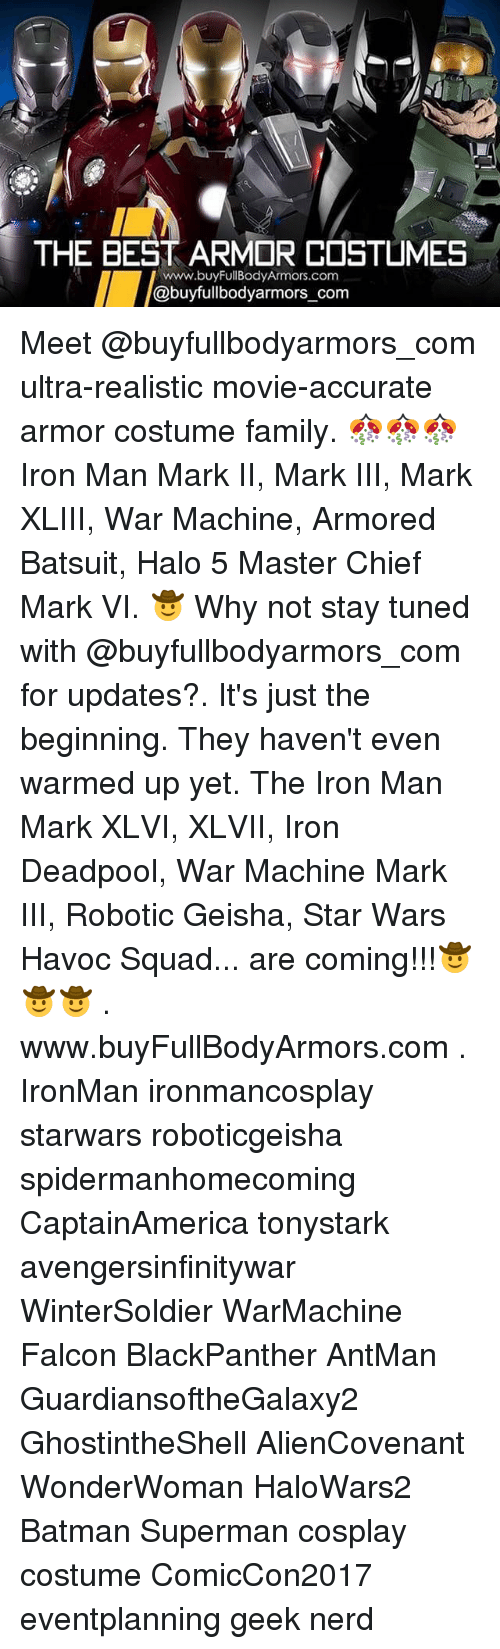 master chief: THE BEST ARMOR COSTLIMES  www.buyFullBodyArmors.com  @buyfullbodyarmors_com Meet @buyfullbodyarmors_com ultra-realistic movie-accurate armor costume family. 🎊🎊🎊Iron Man Mark II, Mark III, Mark XLIII, War Machine, Armored Batsuit, Halo 5 Master Chief Mark VI. 🤠 Why not stay tuned with @buyfullbodyarmors_com for updates?. It's just the beginning. They haven't even warmed up yet. The Iron Man Mark XLVI, XLVII, Iron Deadpool, War Machine Mark III, Robotic Geisha, Star Wars Havoc Squad... are coming!!!🤠🤠🤠 . www.buyFullBodyArmors.com . IronMan ironmancosplay starwars roboticgeisha spidermanhomecoming CaptainAmerica tonystark avengersinfinitywar WinterSoldier WarMachine Falcon BlackPanther AntMan GuardiansoftheGalaxy2 GhostintheShell AlienCovenant WonderWoman HaloWars2 Batman Superman cosplay costume ComicCon2017 eventplanning geek nerd